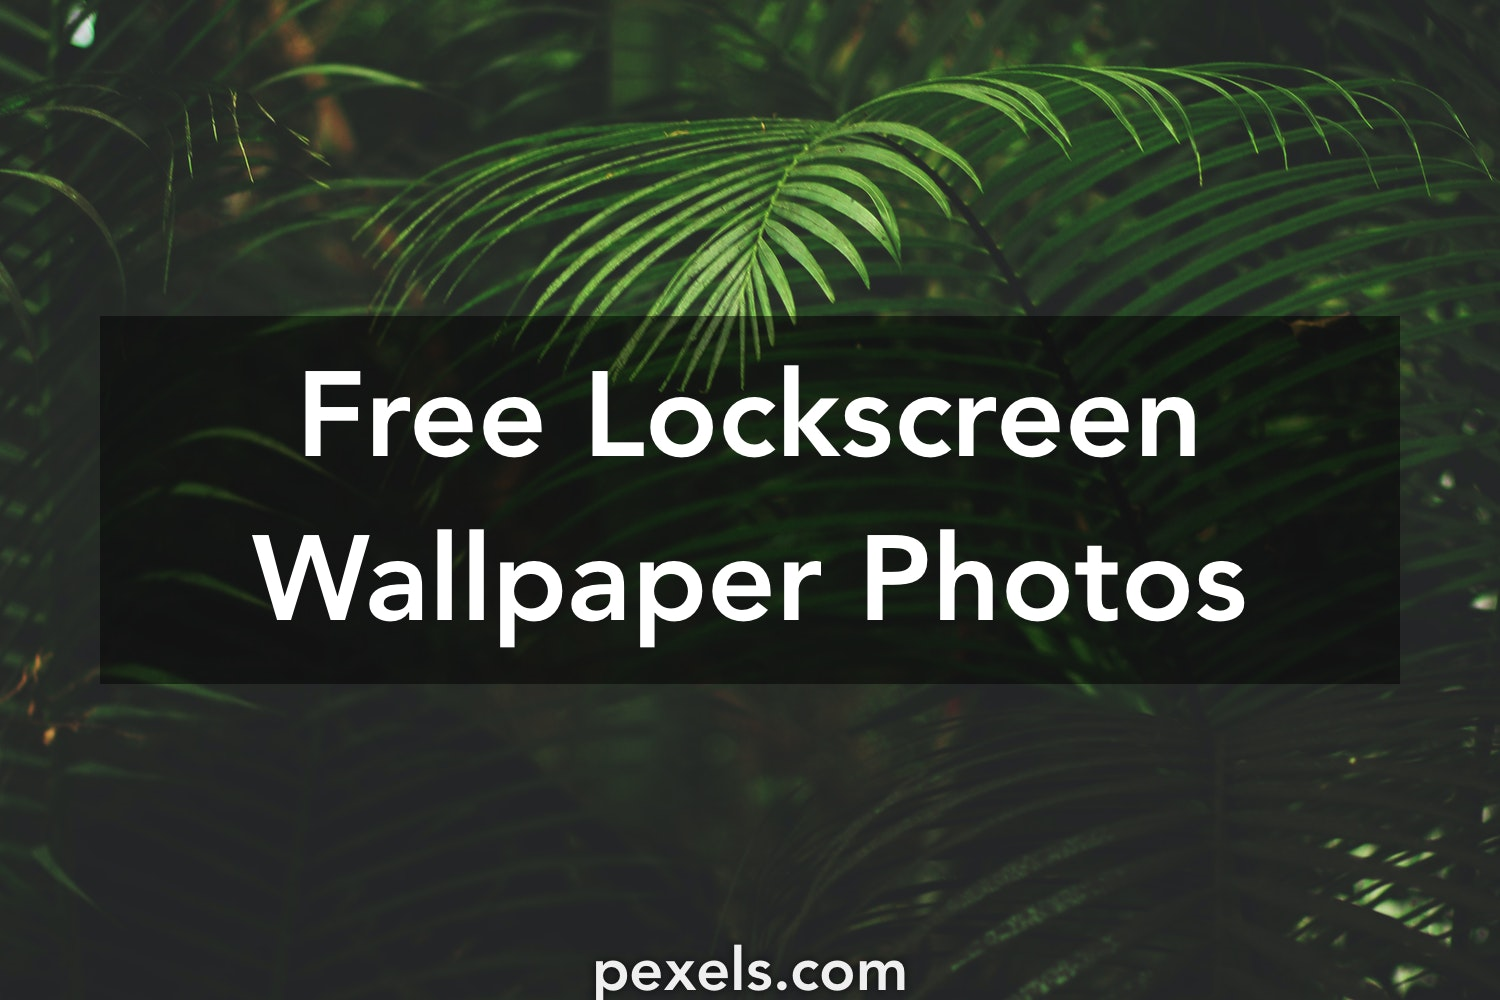 1000 Interesting Lockscreen Wallpaper Photos Pexels Free Stock